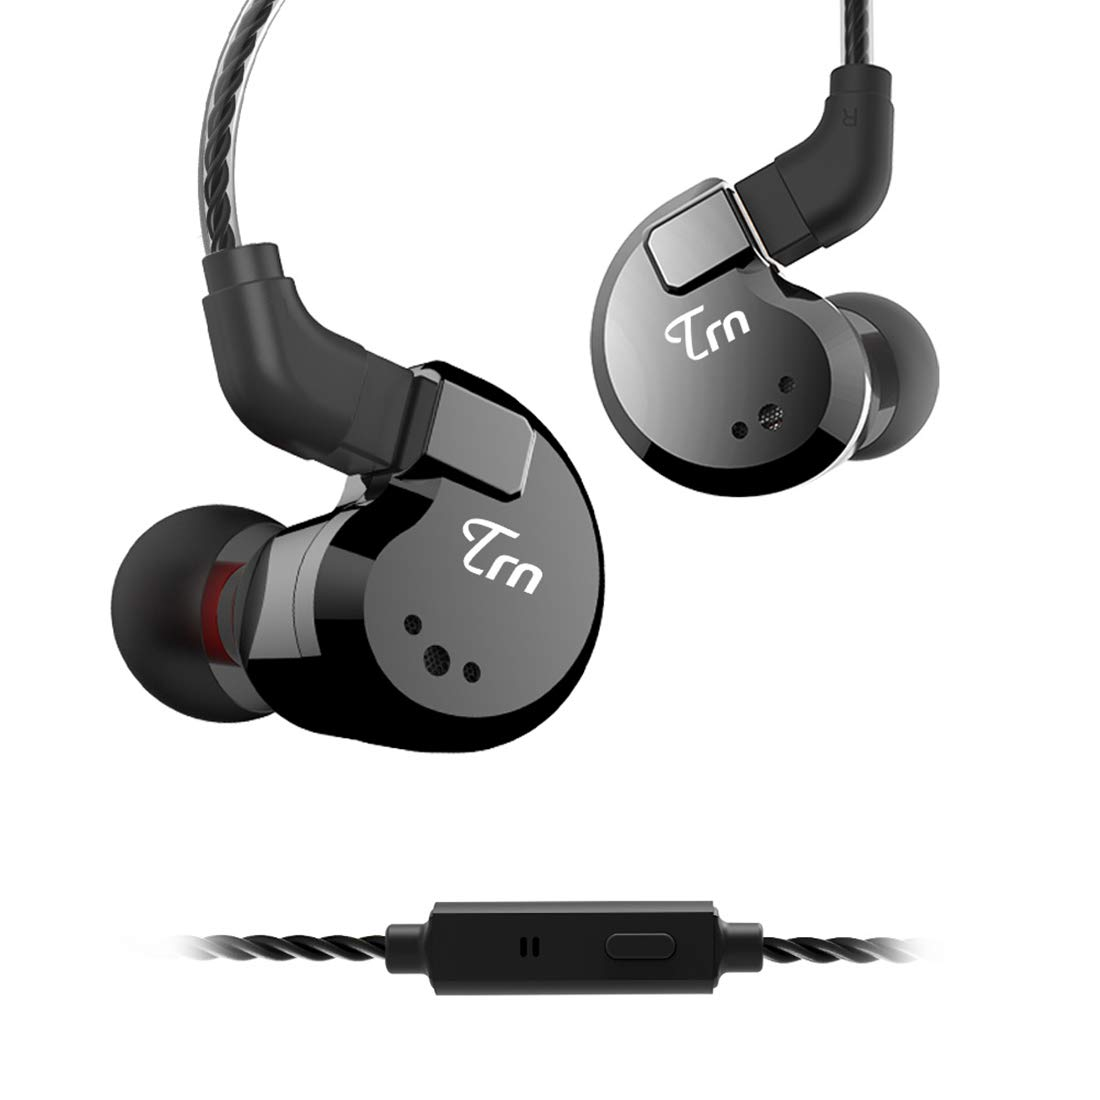 TRN V80 HiFi Earphone, Stage Studio in Ear Monitor, 2 Dynamic 2 Balanced Armature Driver Stereo Bass IEM, Metal in Ear Headphone with Detachable 2 Pin Cable Black with Mic